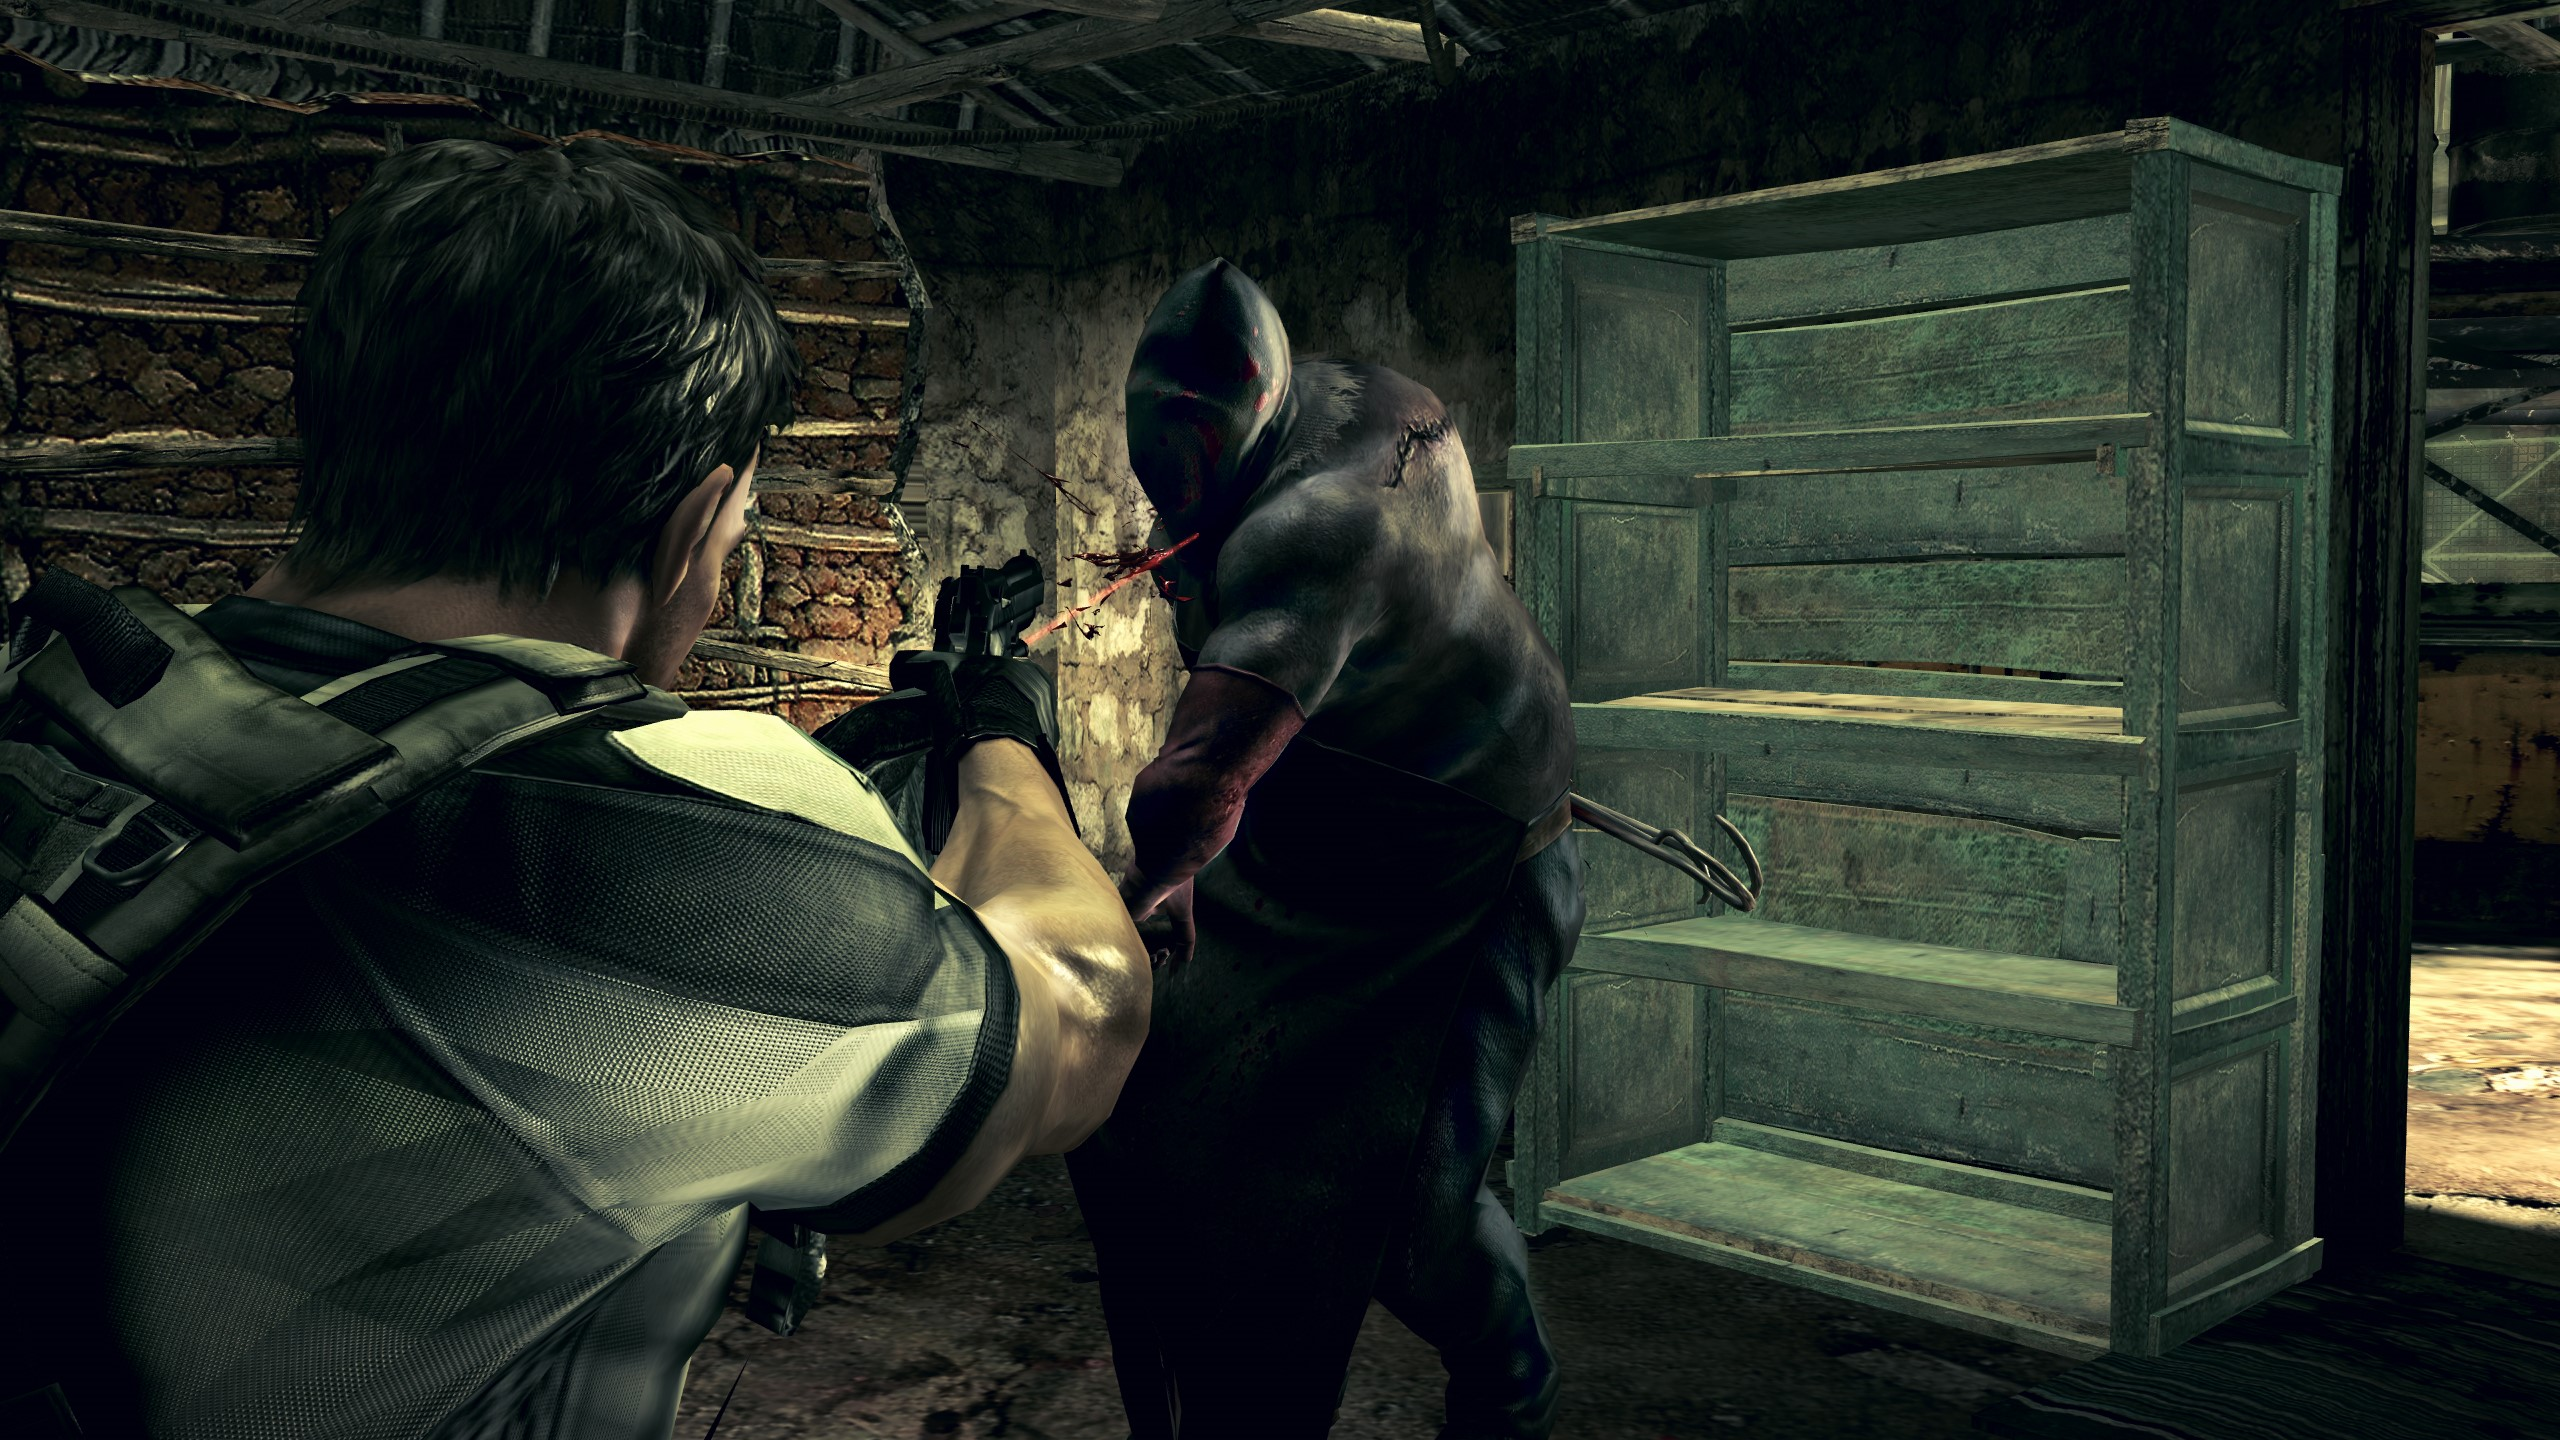 RESIDENT EVIL 5 / BIOHAZARD 5 (STEAM KEY / ROW)